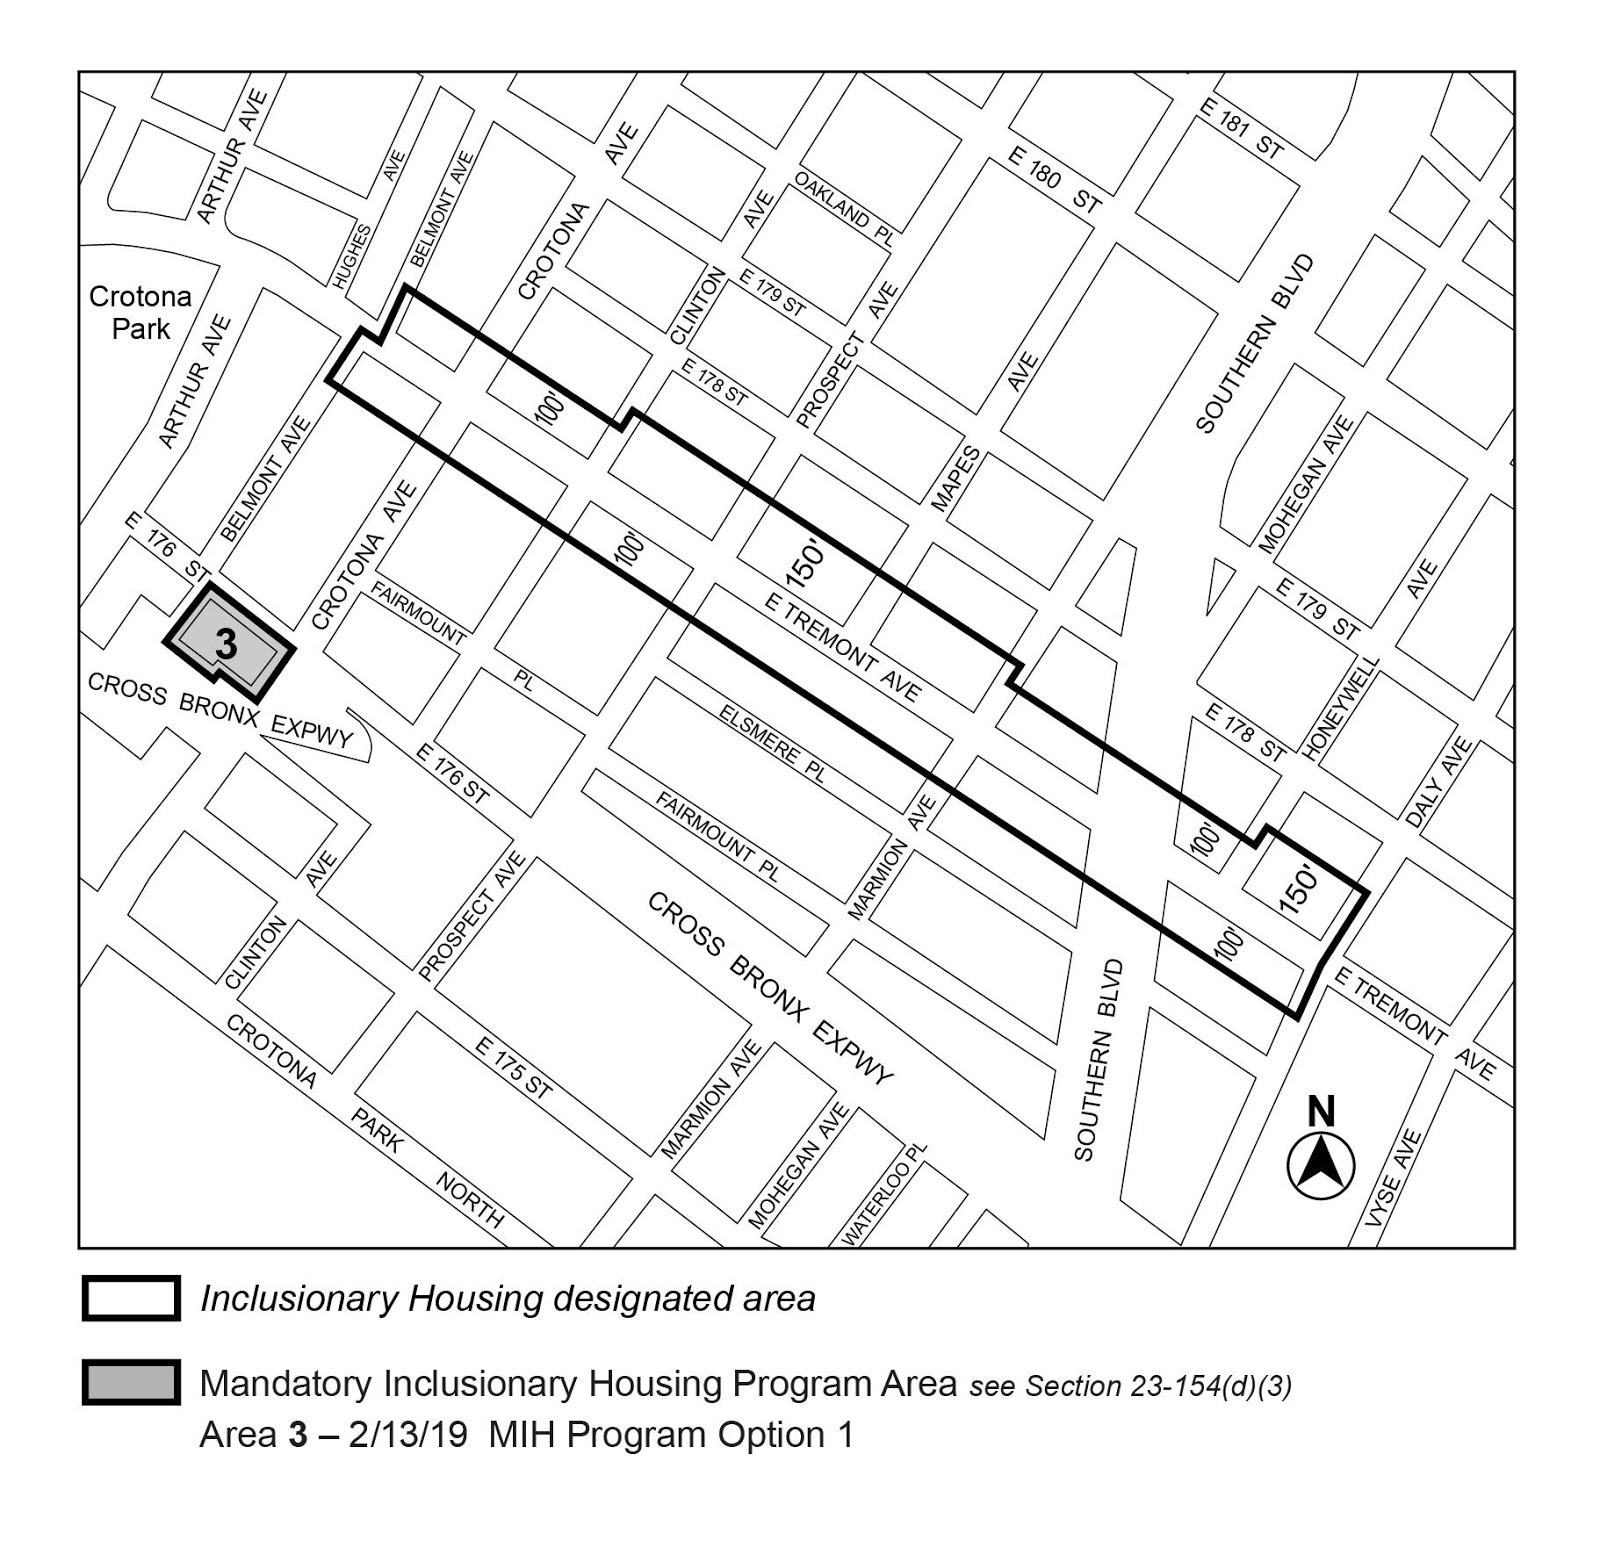 Zoning Resolutions F-Inclusionary Housing Designated Areas and Mandatory Inclusionary Housing Areas_2.23